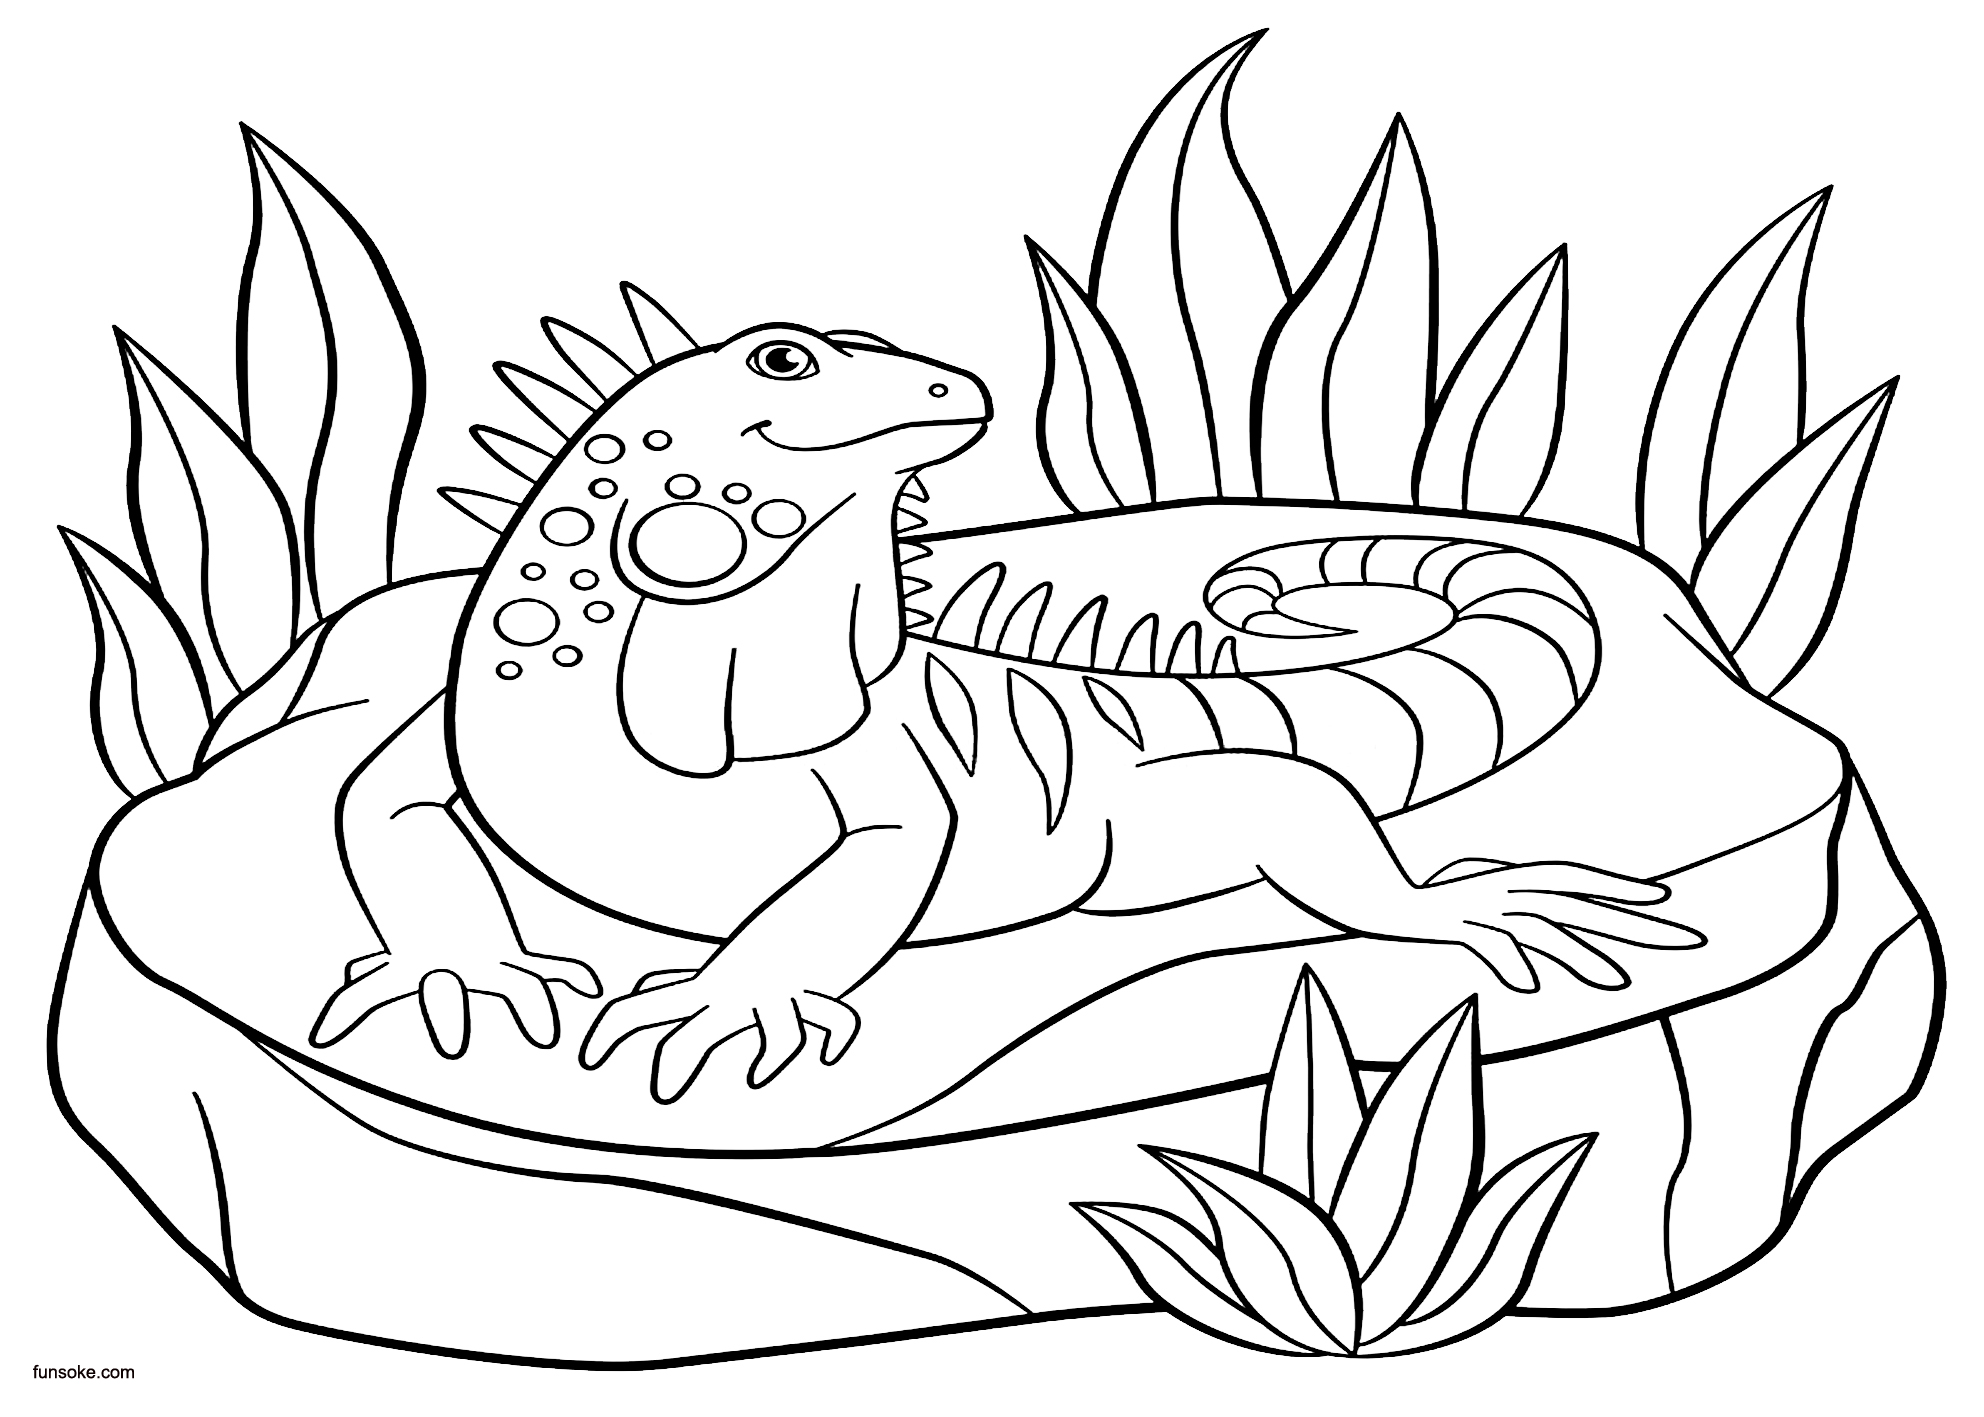 coloring page iguana happy iguana coloring free animal coloring pages sheets coloring iguana page